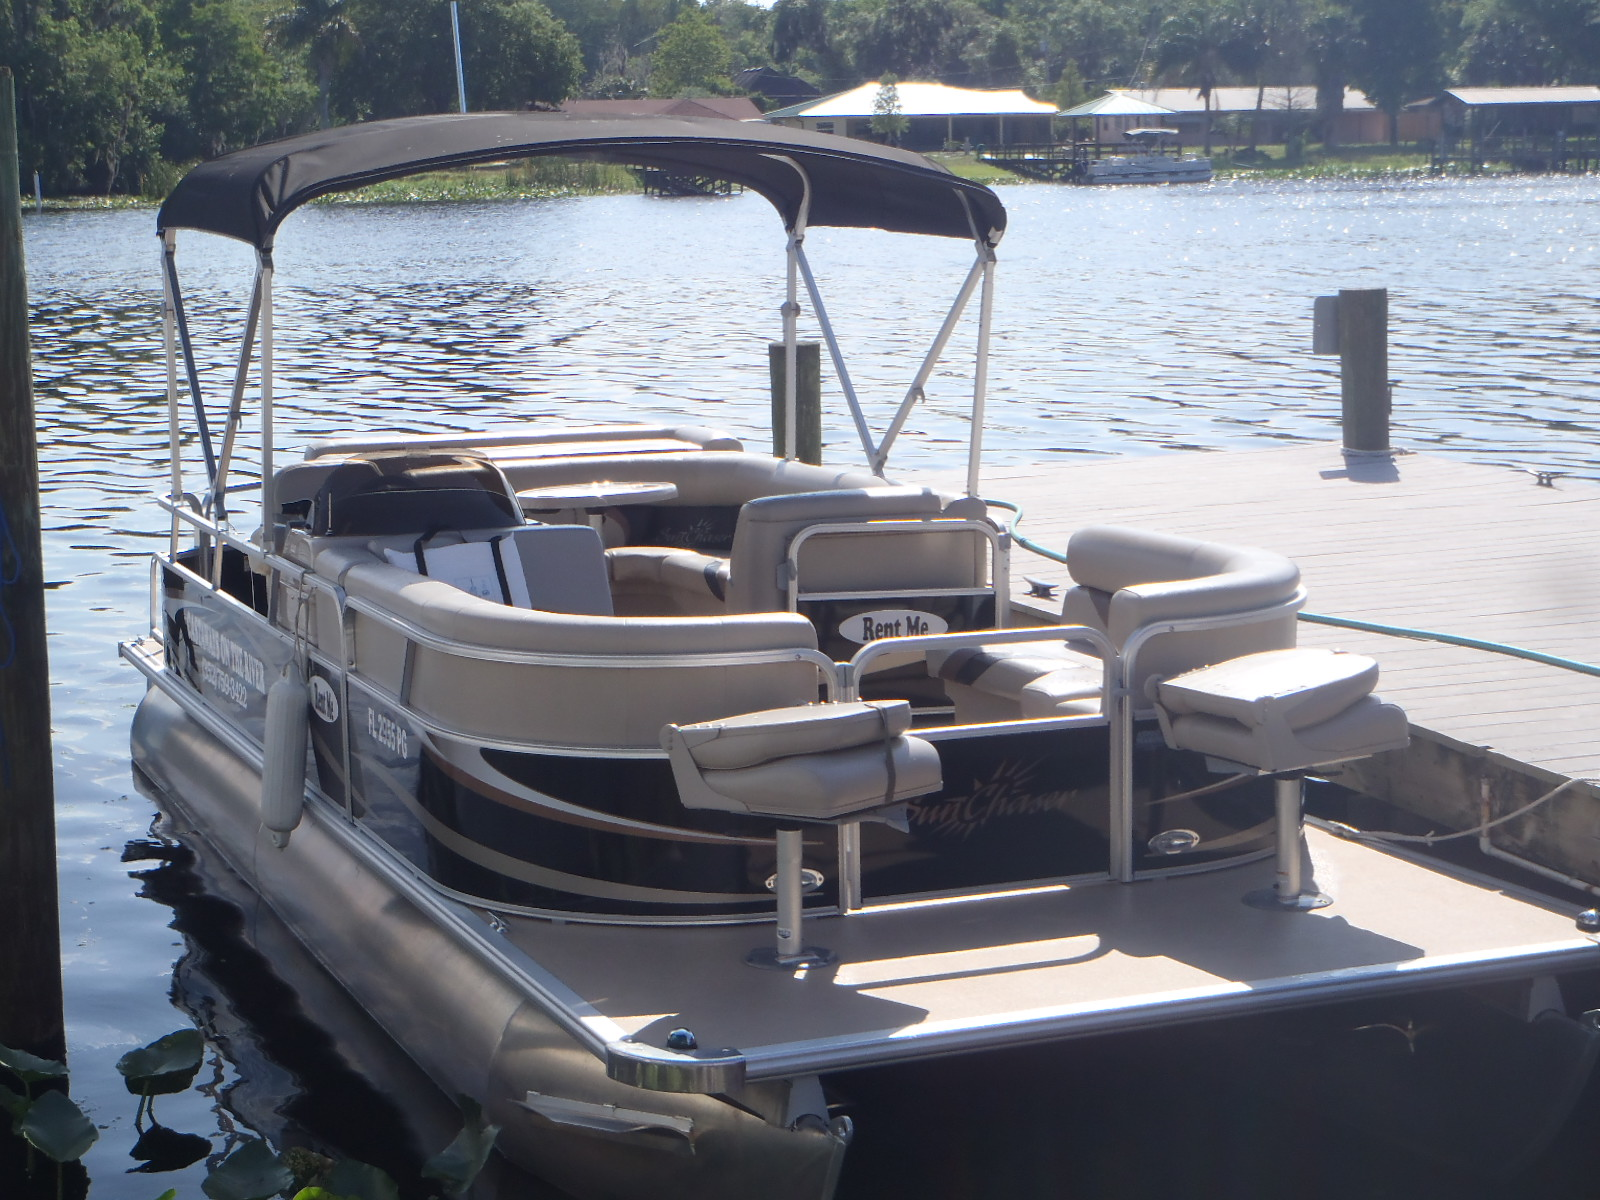 Grady Pontoon   Boat Rental. Boat Rentals   Astor  Florida   Castaways on the River